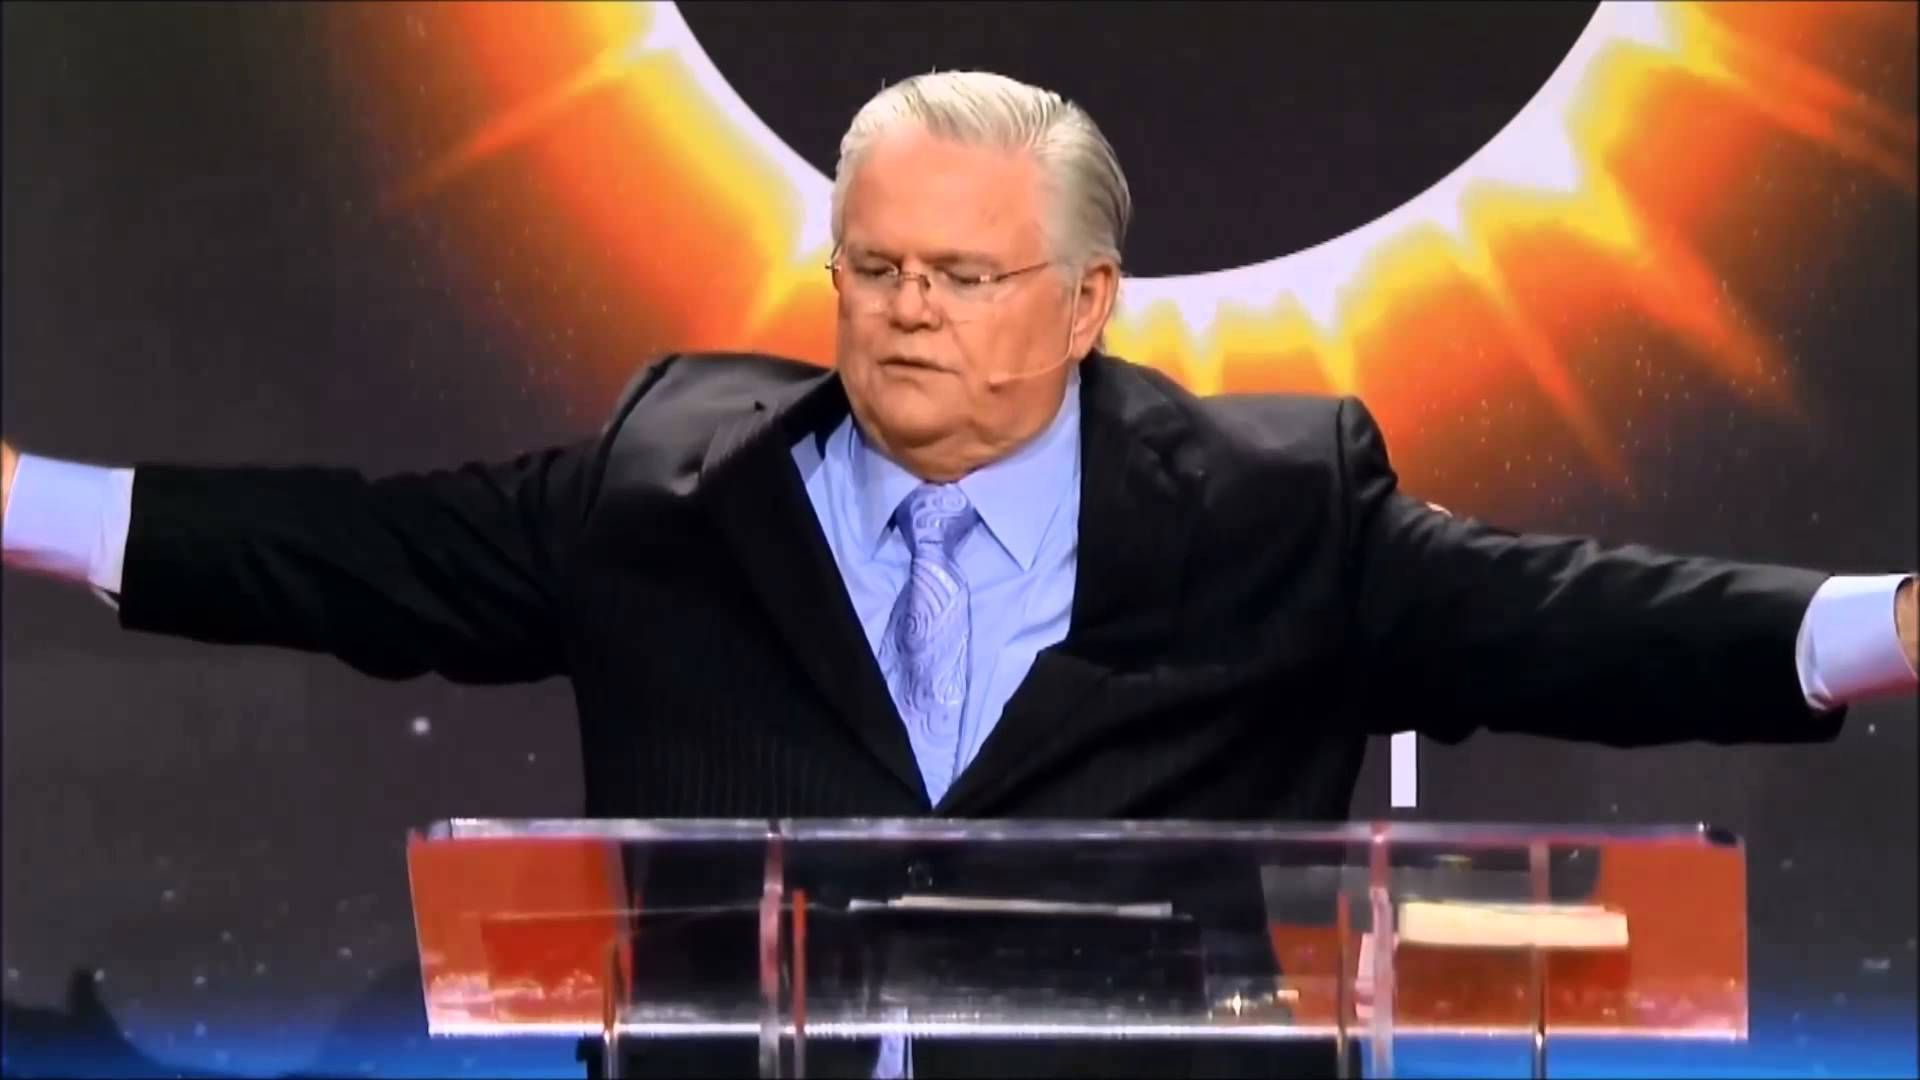 The Coming Four Blood Moons by John Hagee (full) | John ...